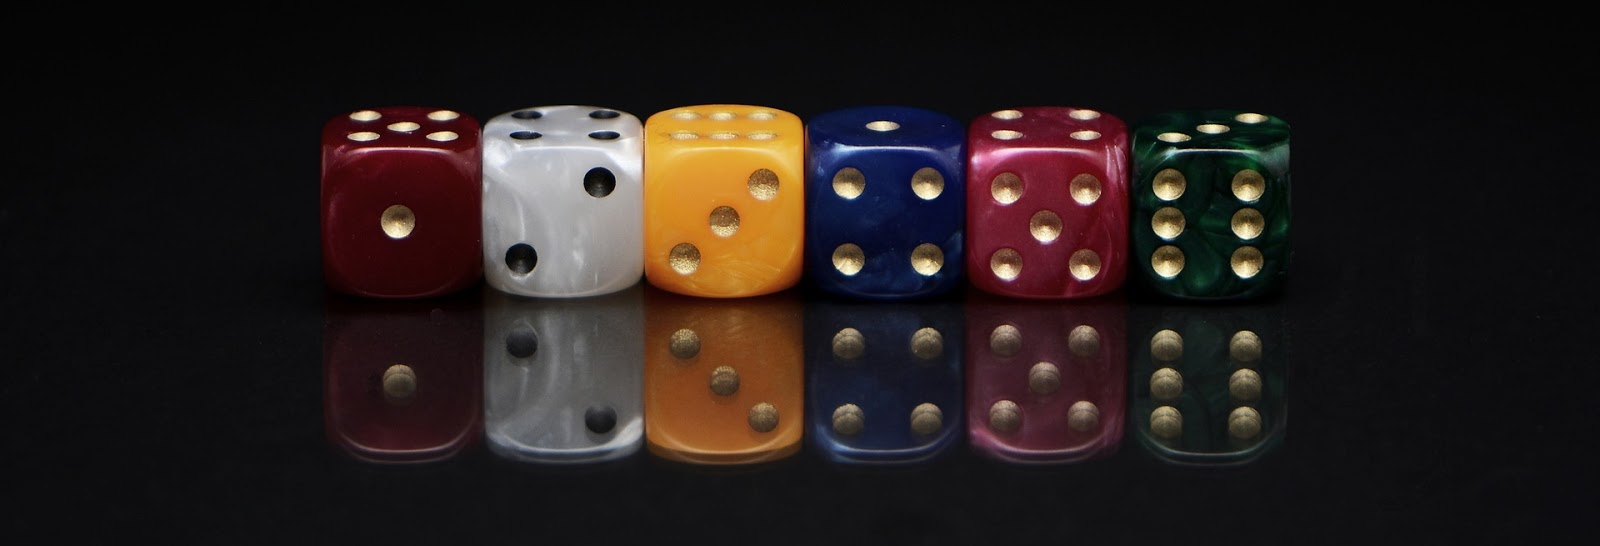 Types of Sequences: dice has different faces with sequence